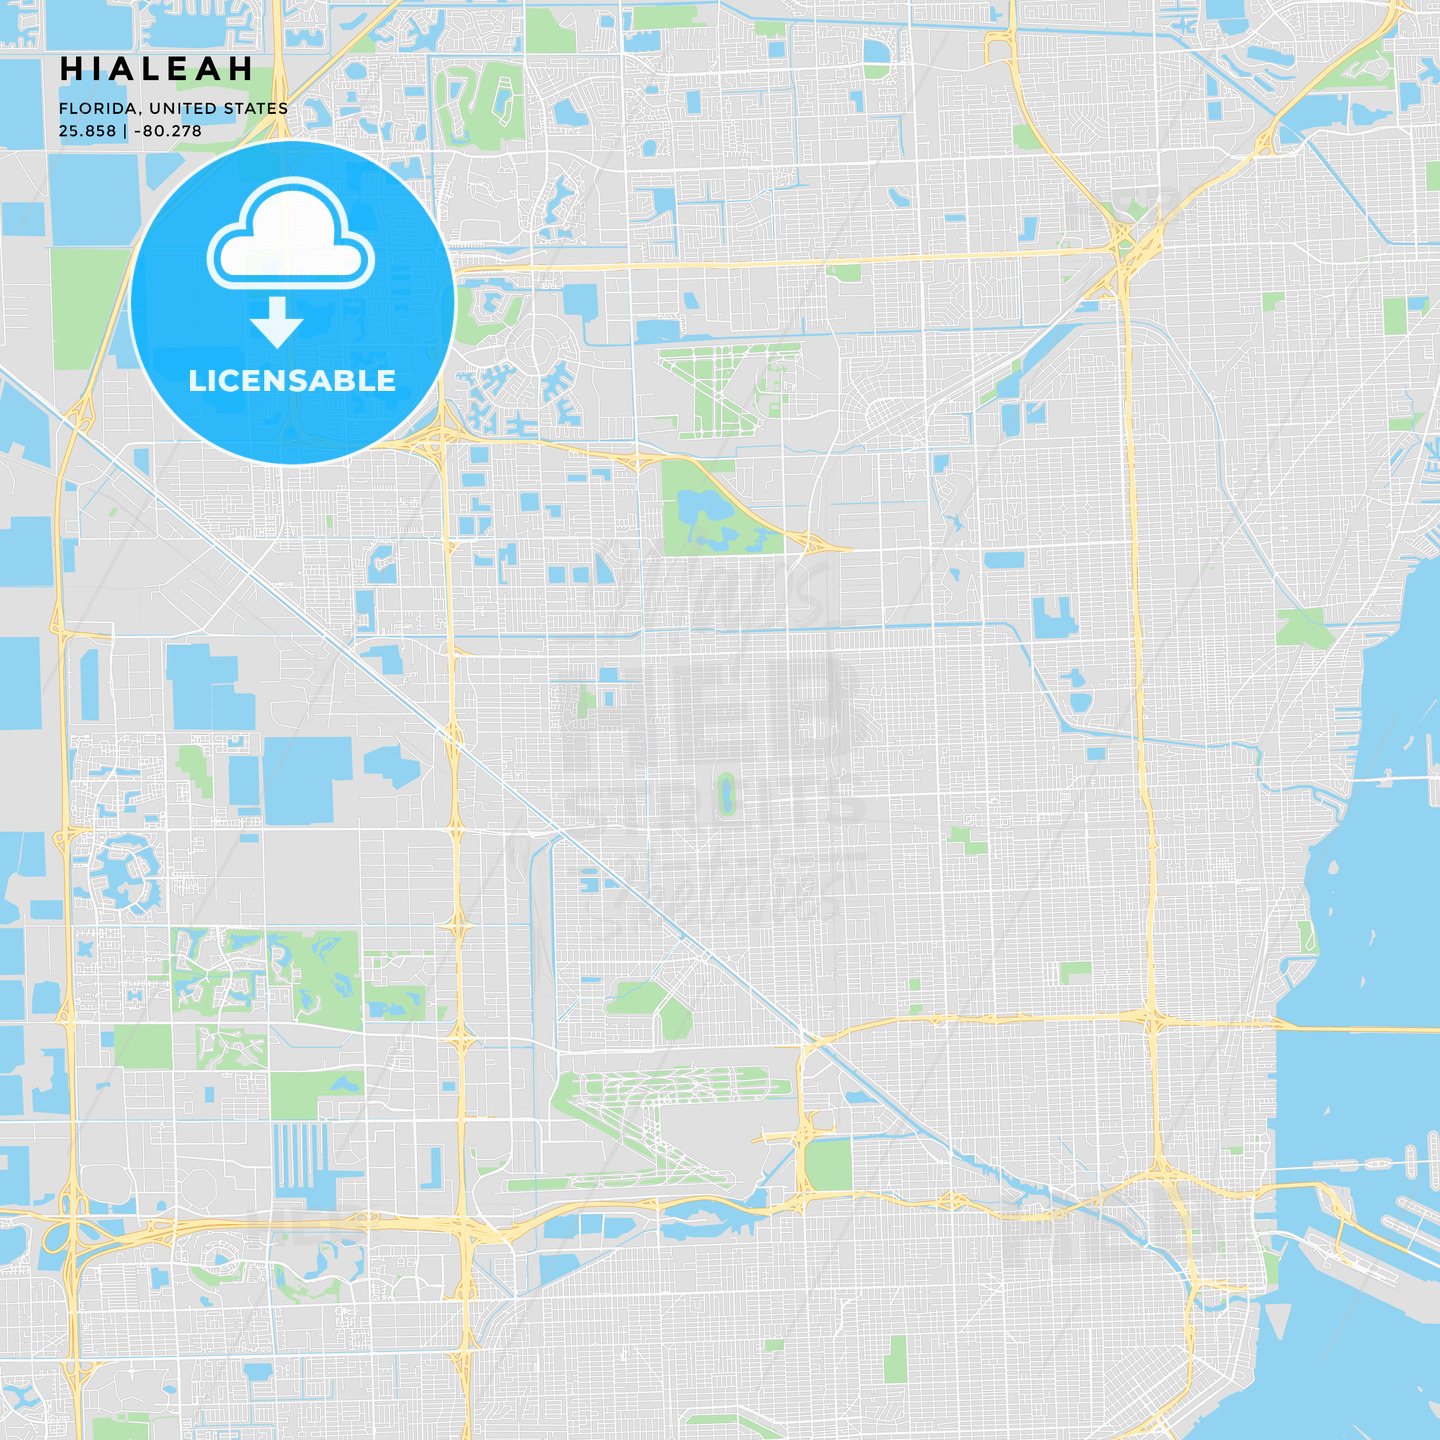 Printable street map of Hialeah, Florida